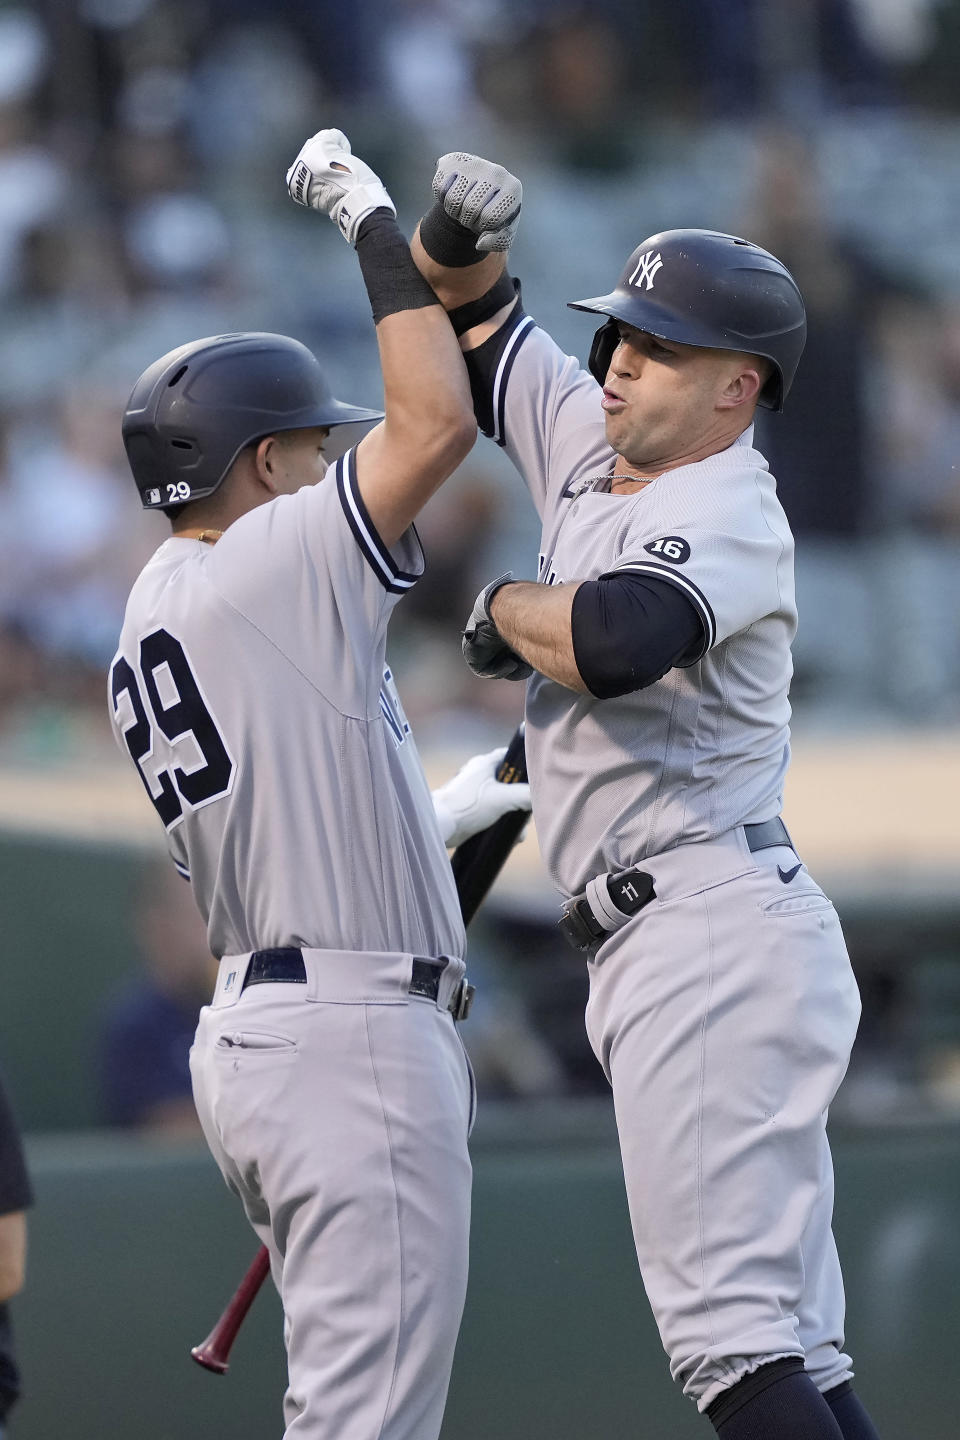 New York Yankees' Brett Gardner, right, celebrates with Gio Urshela after hitting a solo home run against the Oakland Athletics during the second inning of a baseball game Thursday, Aug. 26, 2021, in Oakland, Calif. (AP Photo/Tony Avelar)